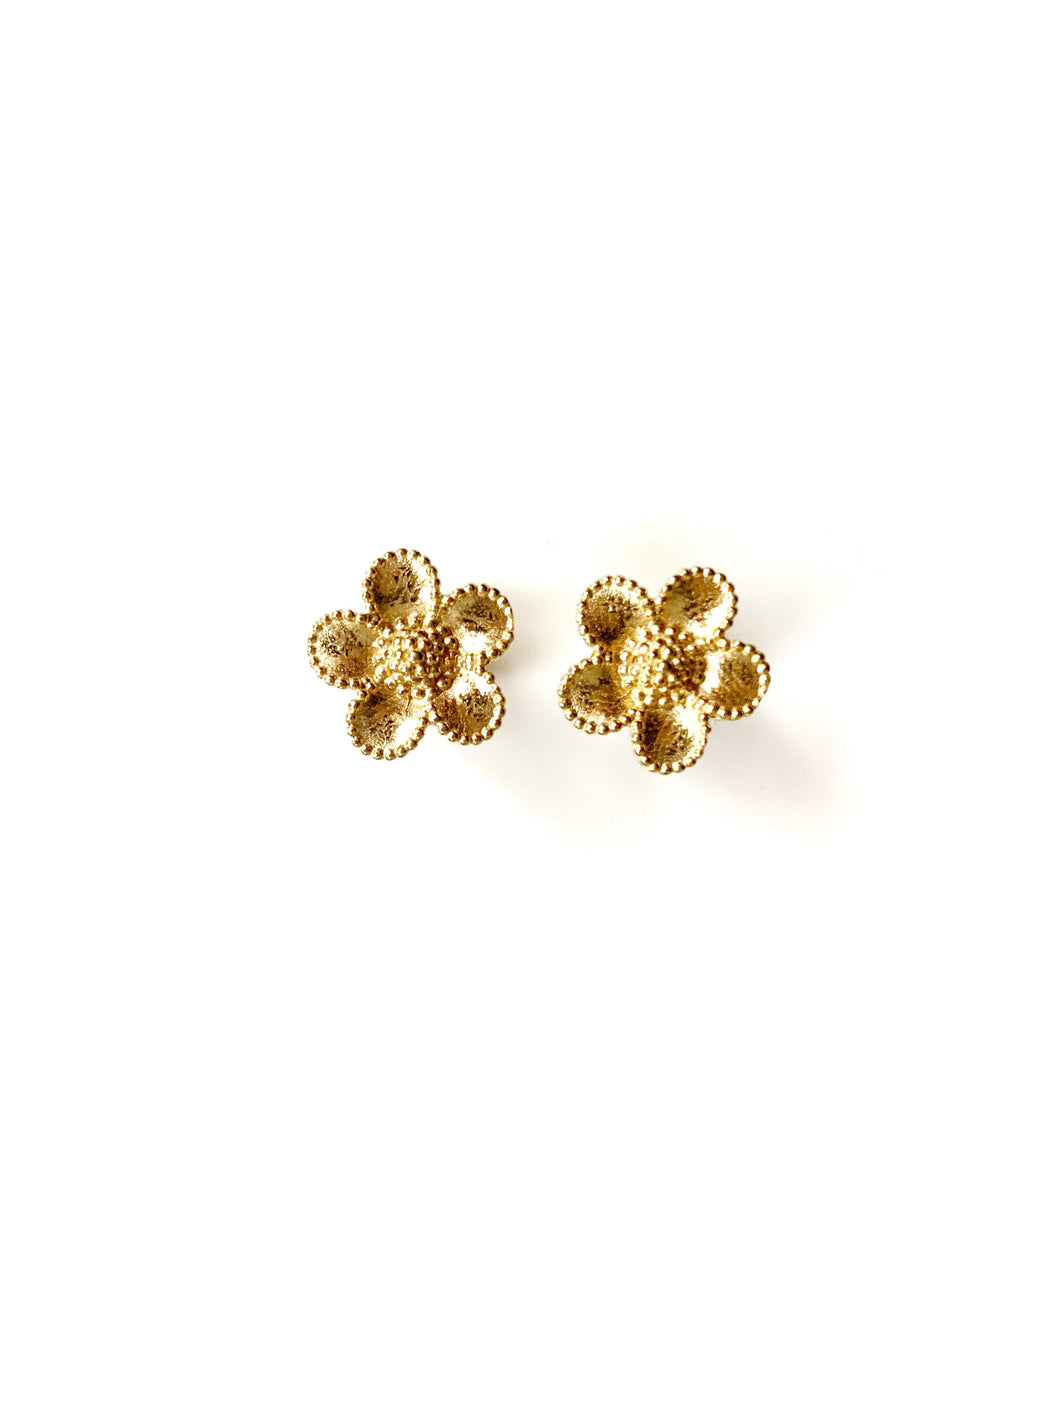 My small flower earrings